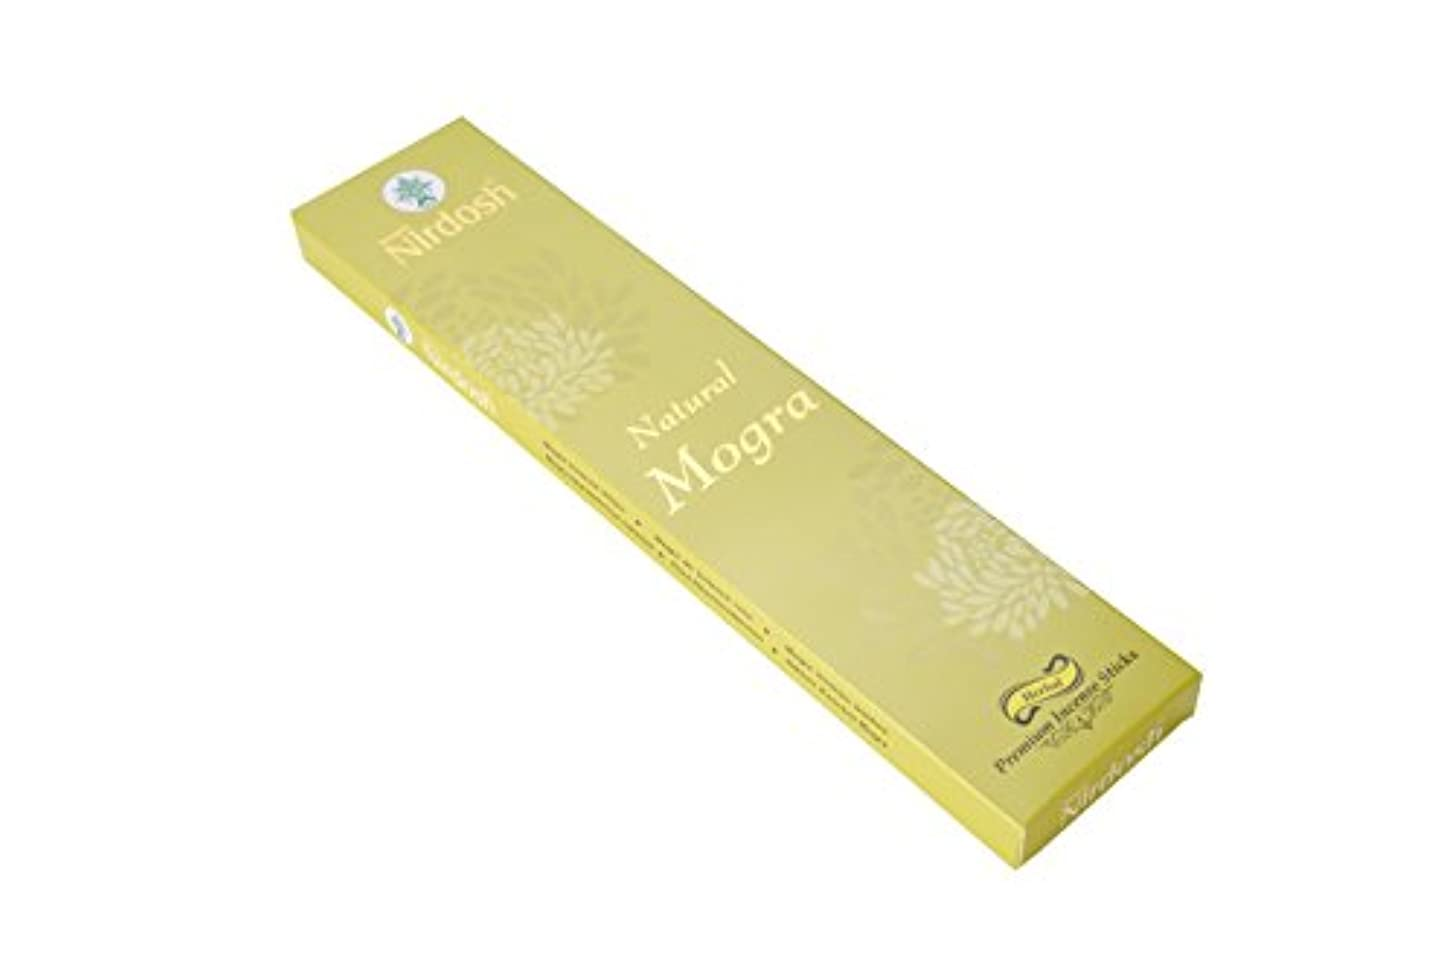 Nirdosh Premium Herbal Incense Sticks – Natural Mogra味100 g。12インチLong ( Pack of 2 ) with 1 Free木製お香ホルダー